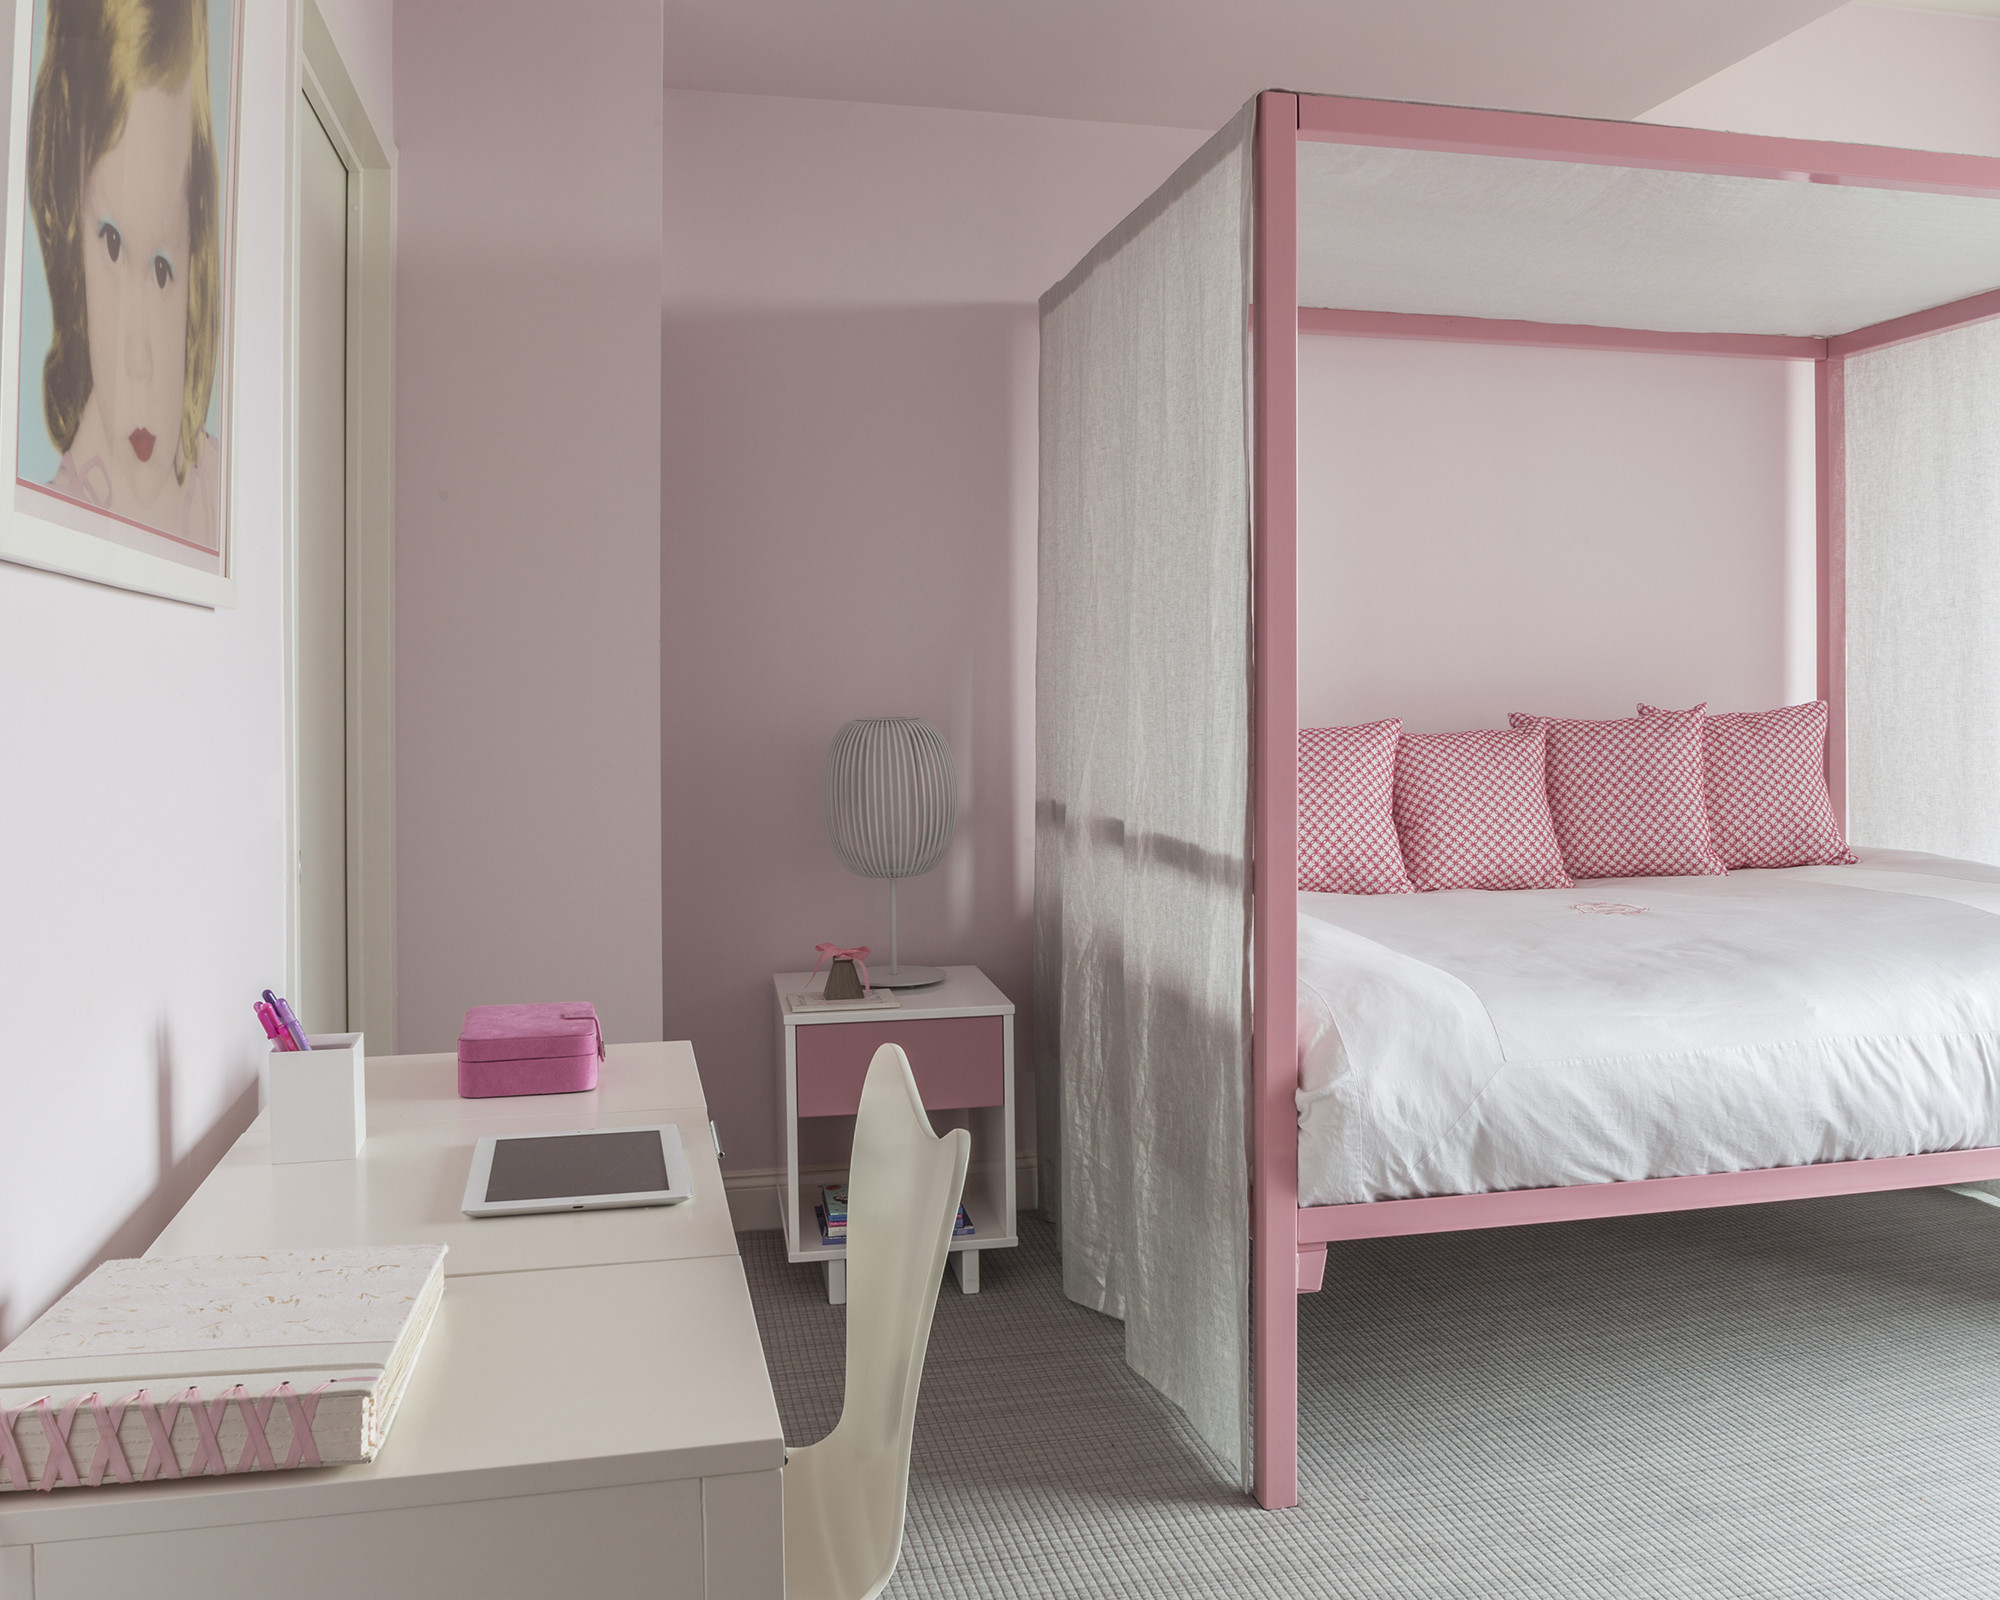 Daughter Olivia's room is a girly haven in shades of pink.